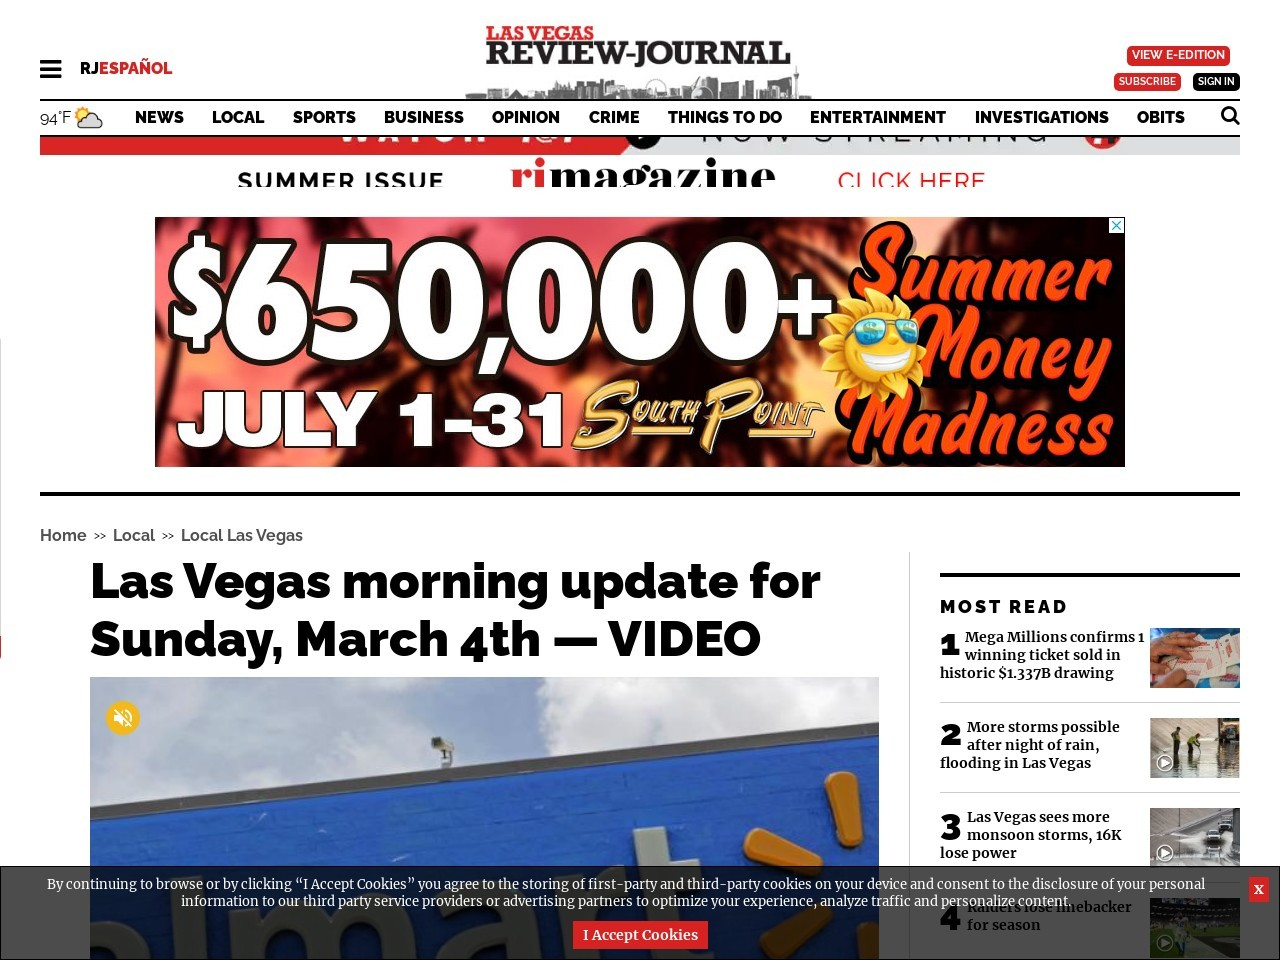 Las Vegas morning update for Sunday, March 4th — VIDEO